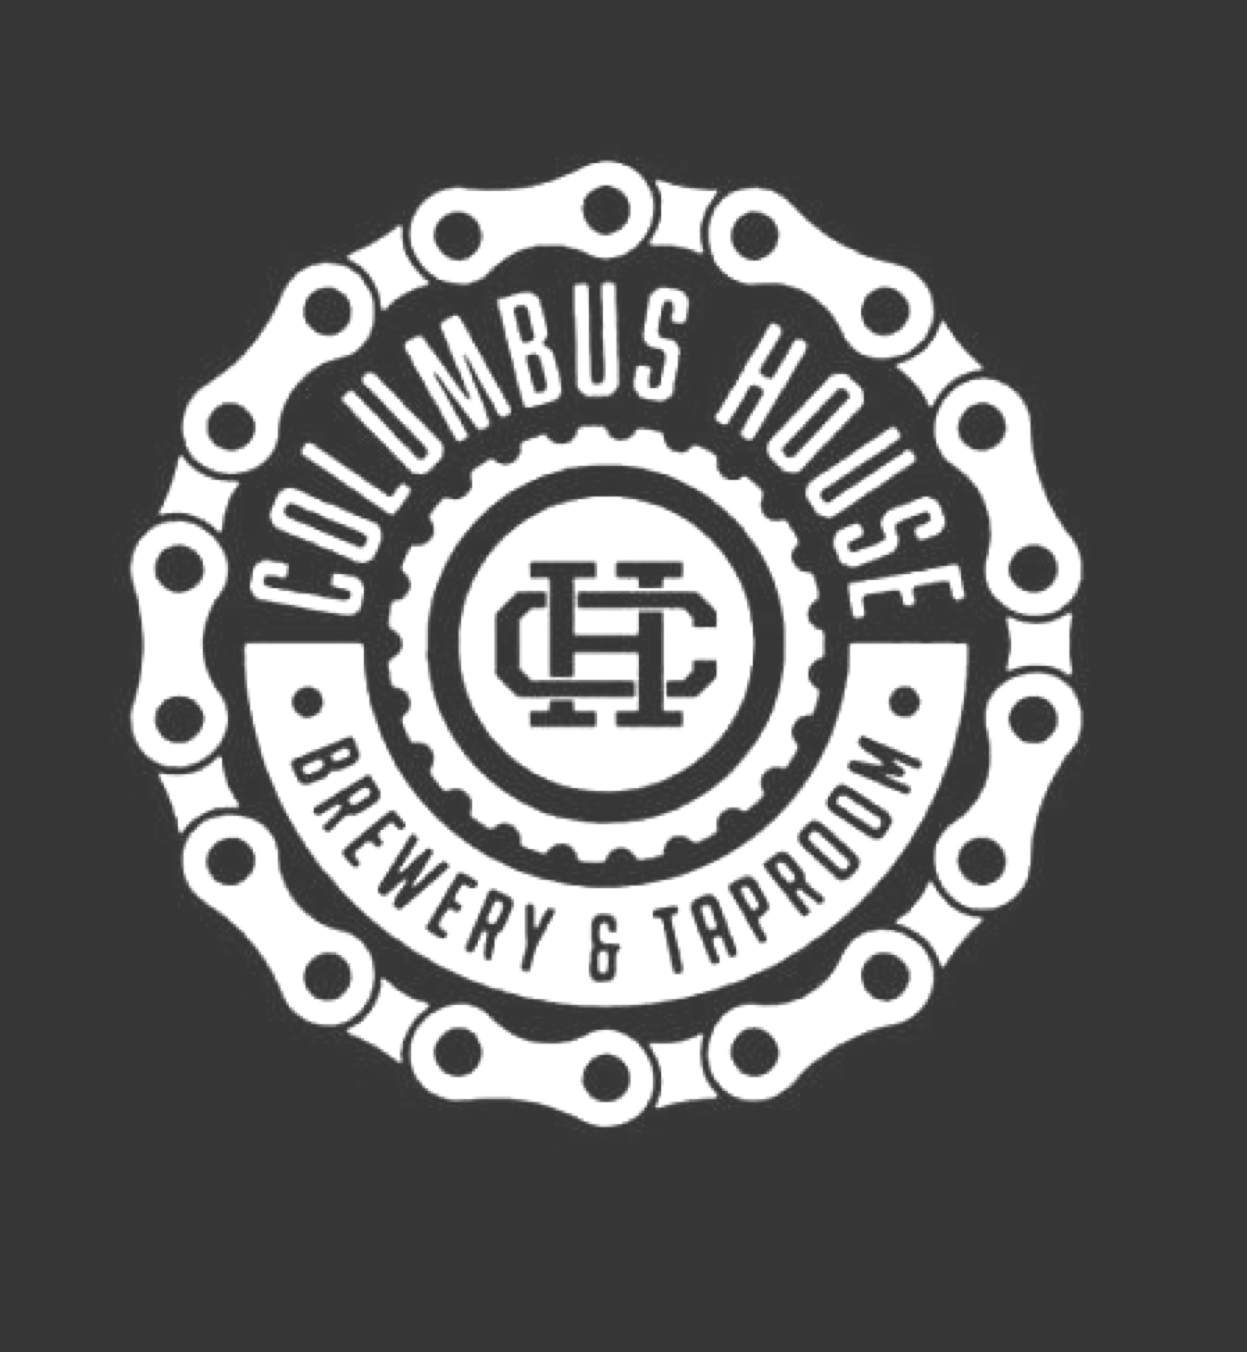 Columbus House Brewery